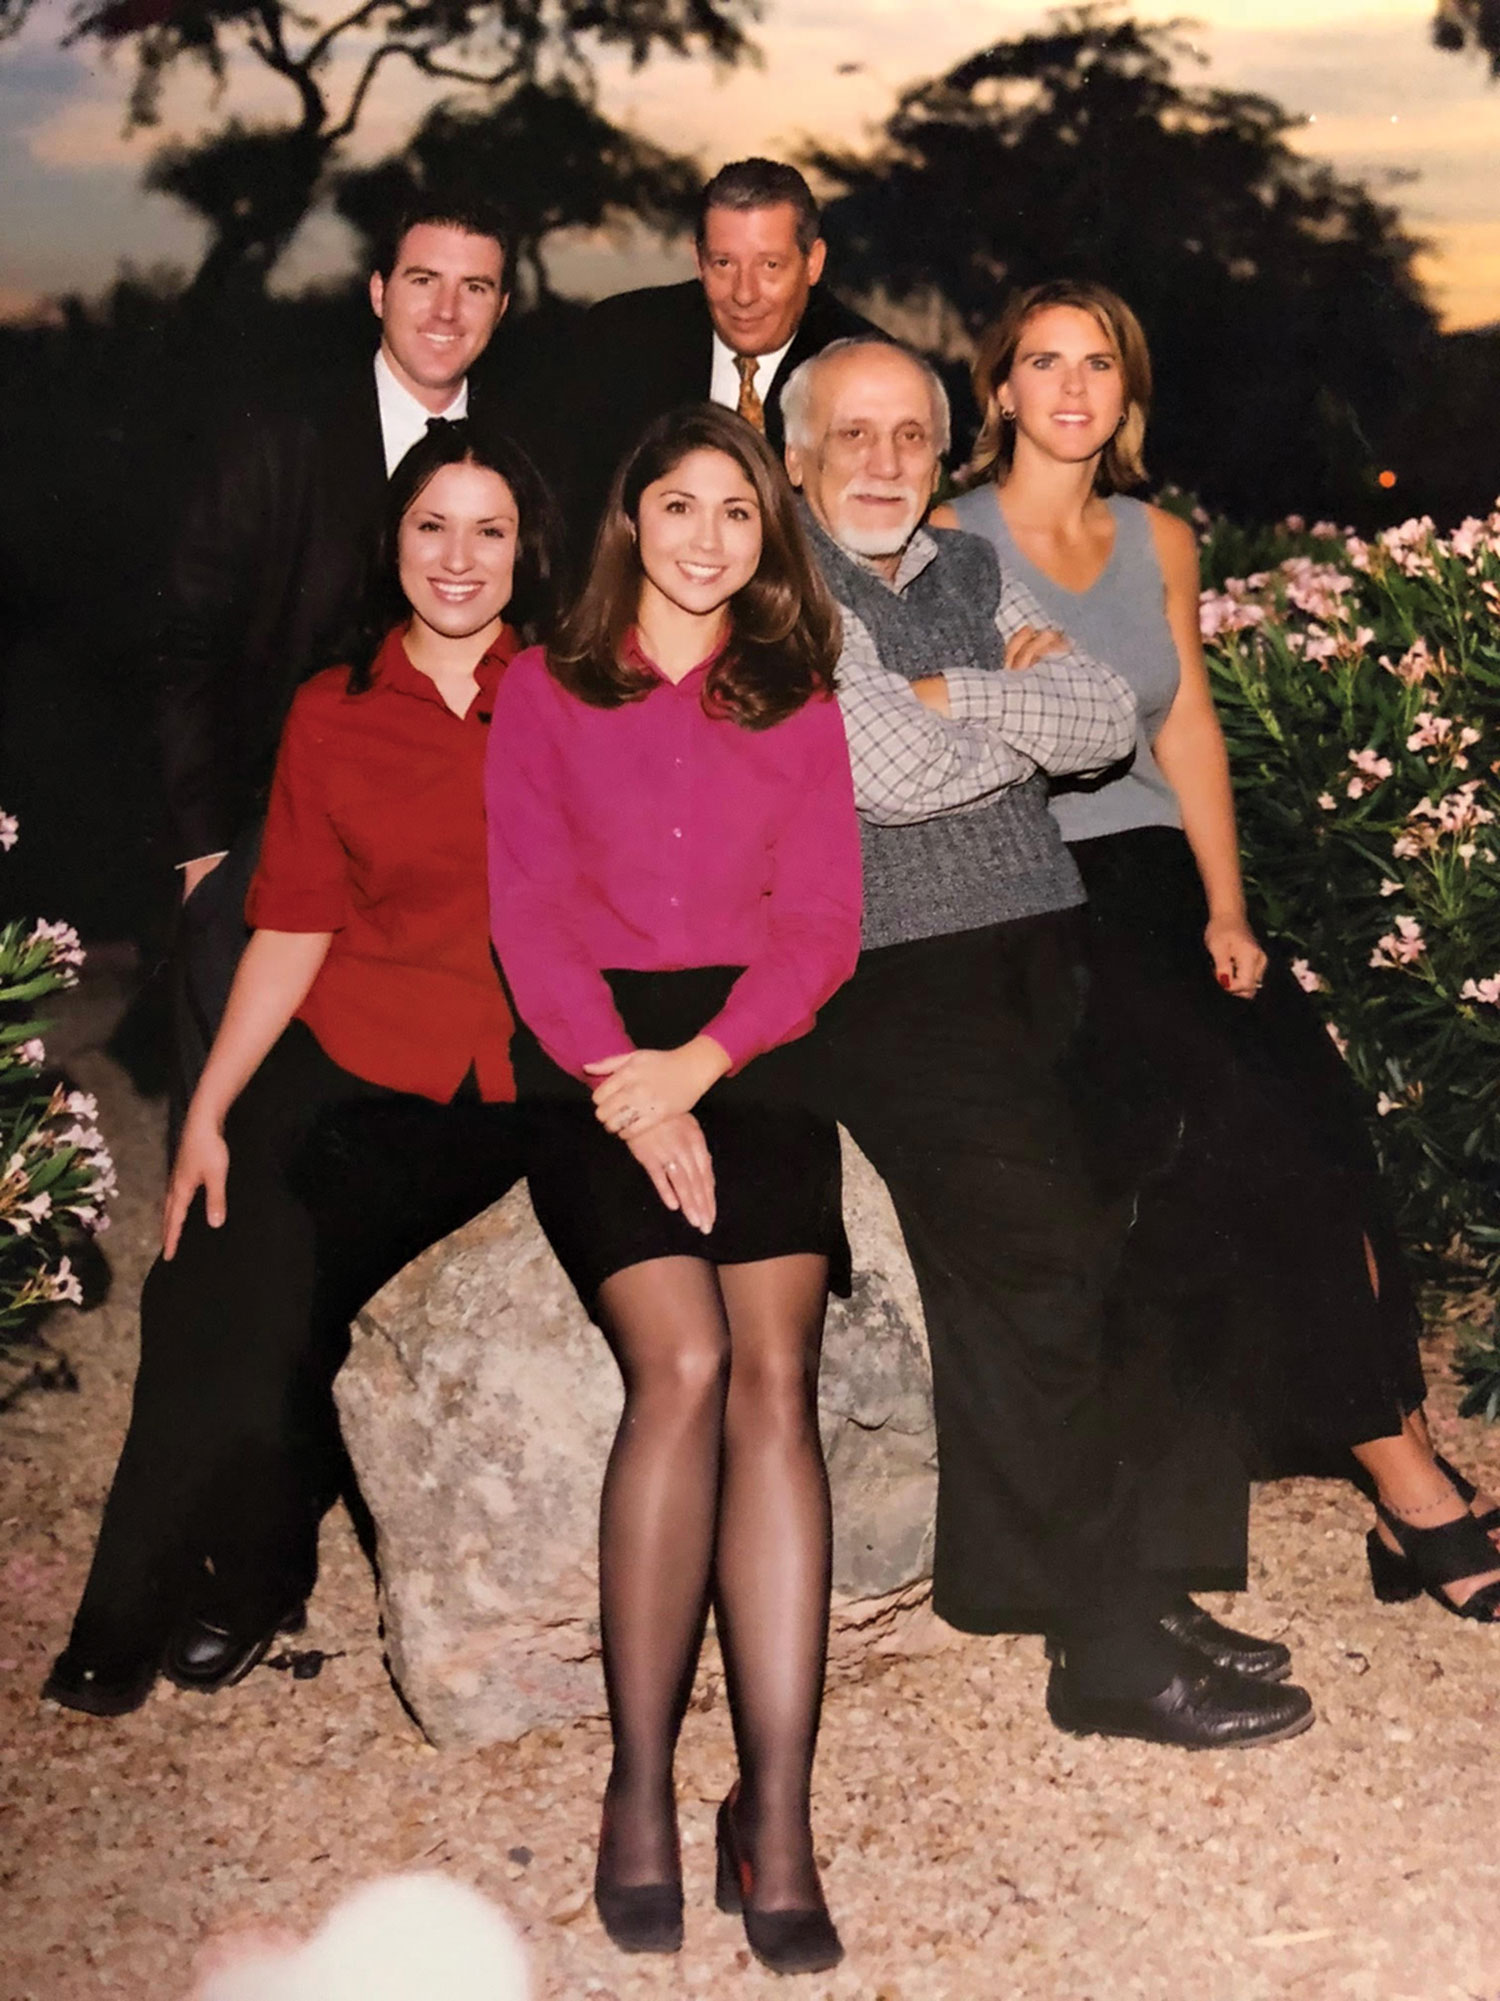 The original Times Media Group team in 1999 (from left): publisher Steve Strickbine, designer Chelsa Linnertz, sales representatives Jennifer Lopez and Dennis Christensen, circulation manager Jim Dowden and editor Suzanne Strickbine; Photo courtesy Steve Strickbine